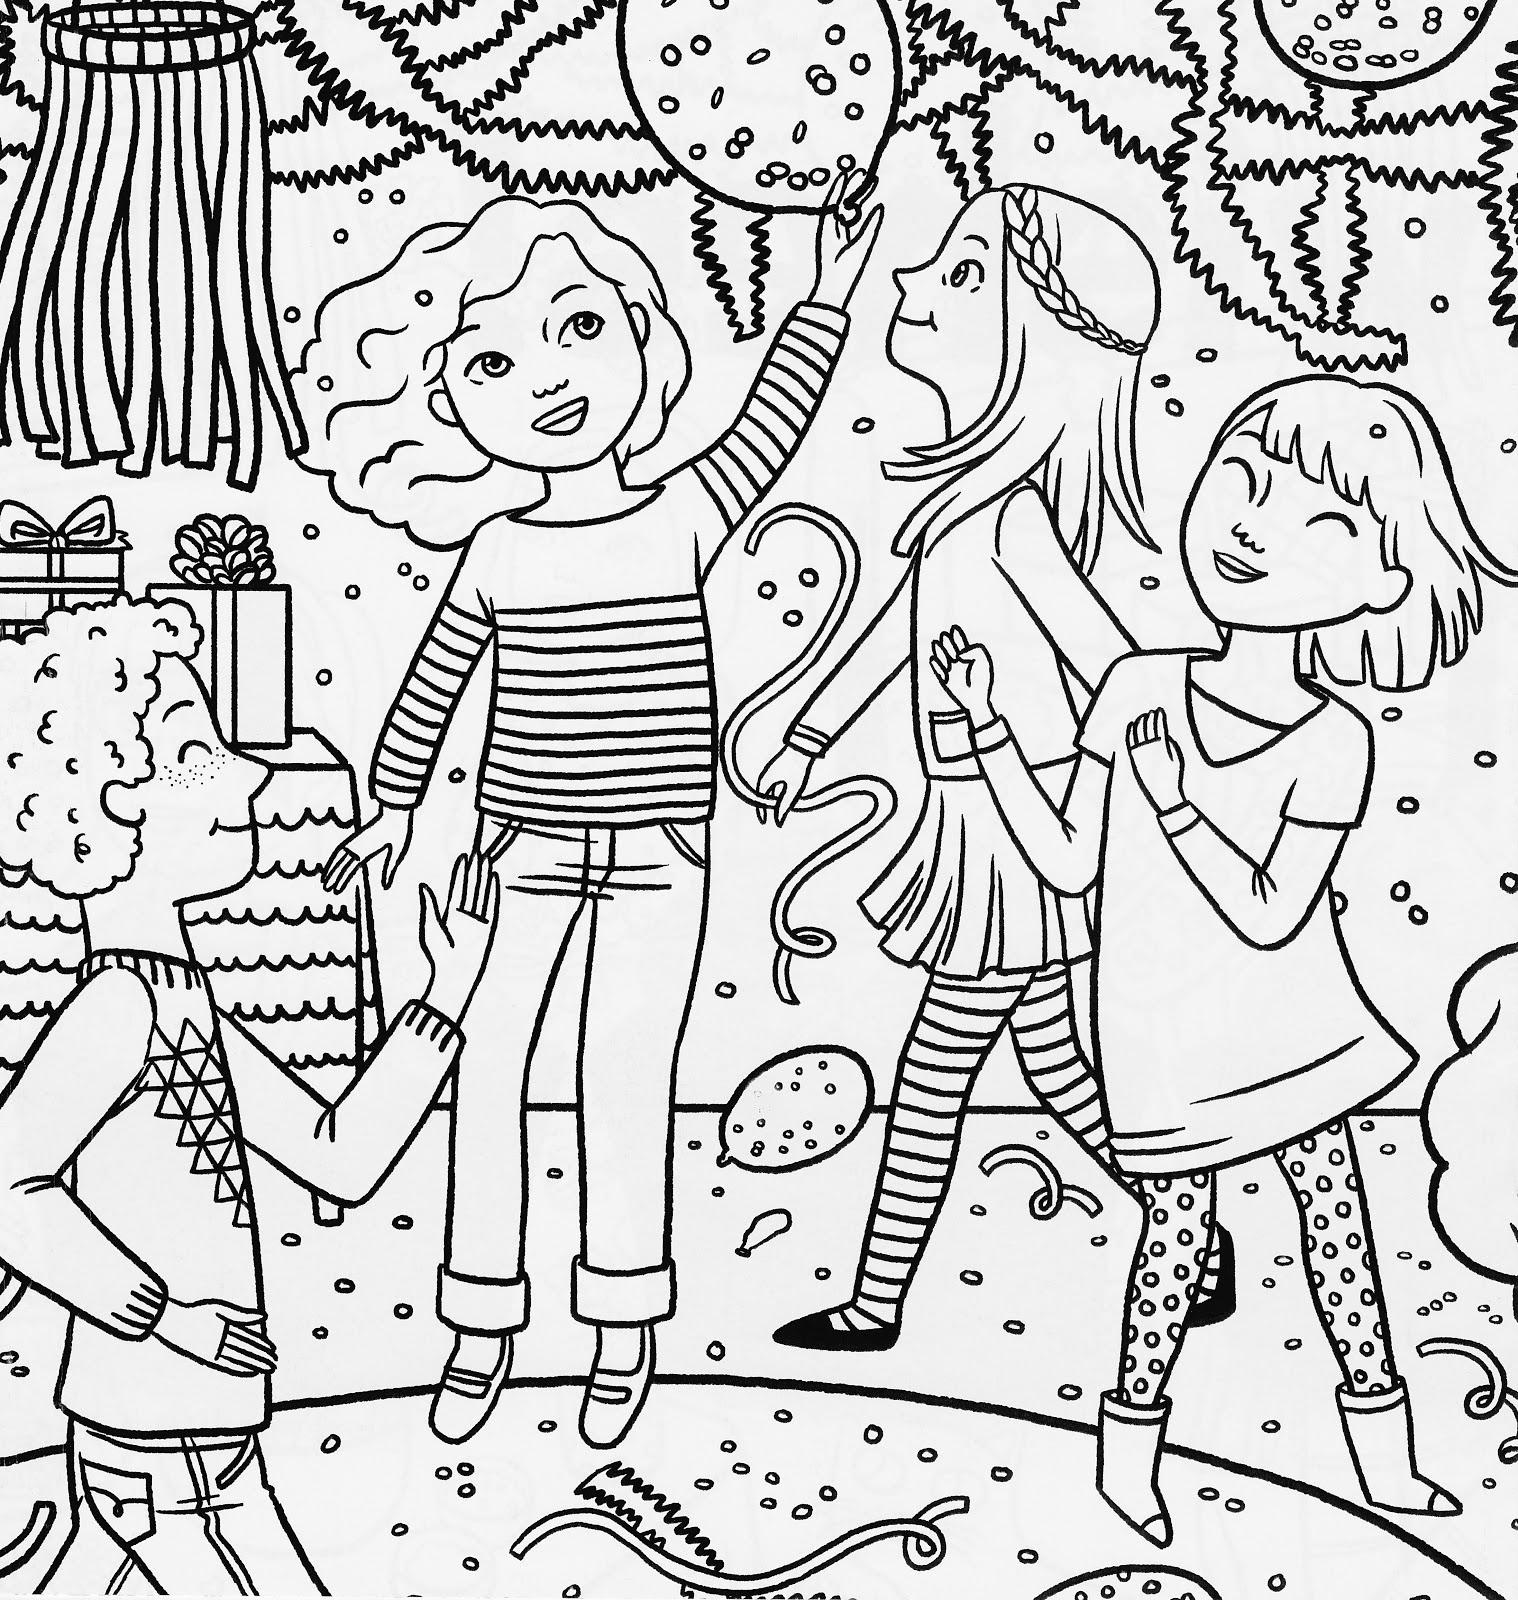 Coloring Pages For Girls: Bonggamom Finds: American Girl Magazine Special Birthday